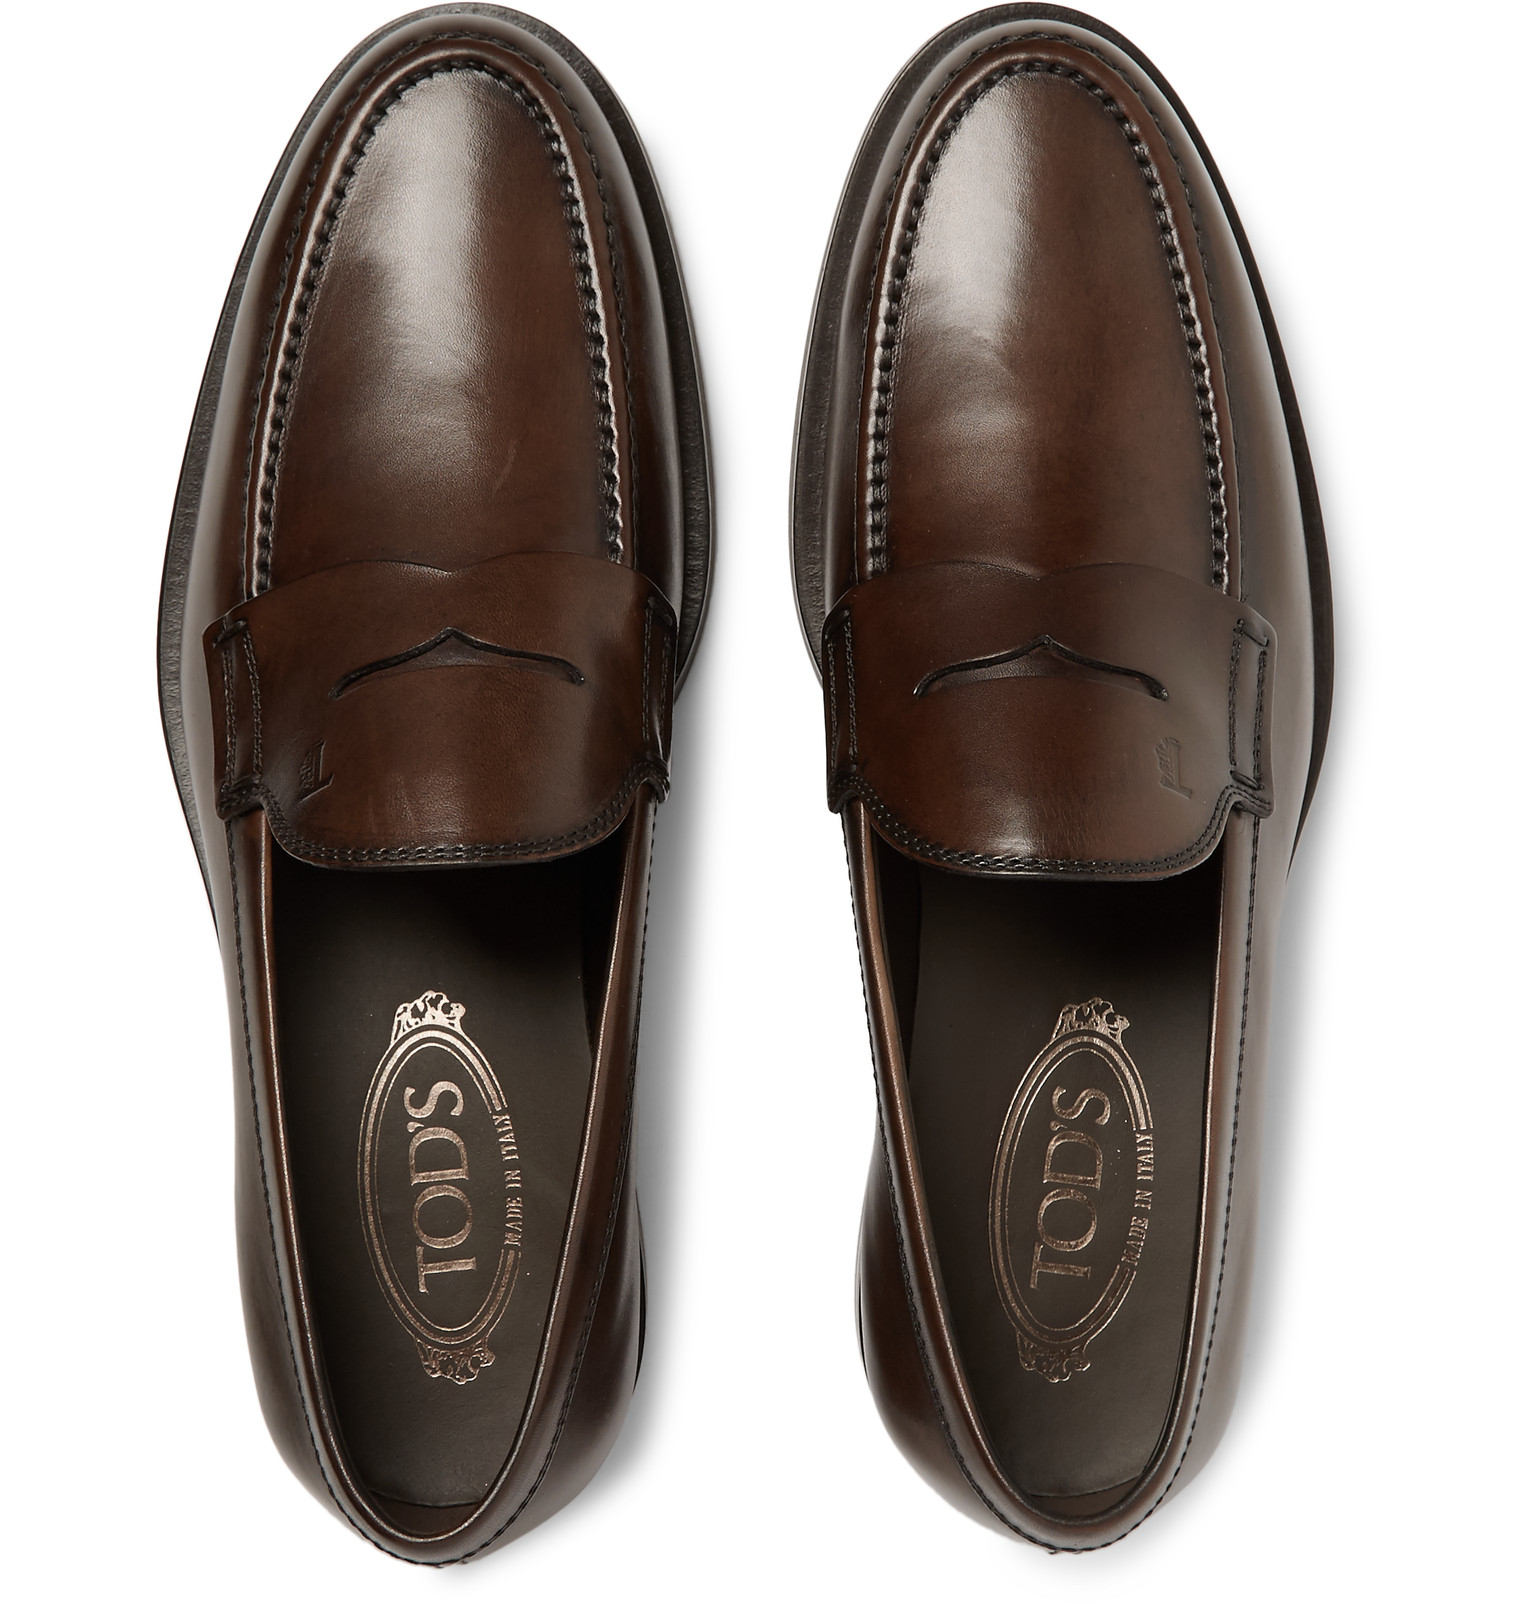 Tod's Leather Penny Loafers in Dark Brown (Brown) for Men